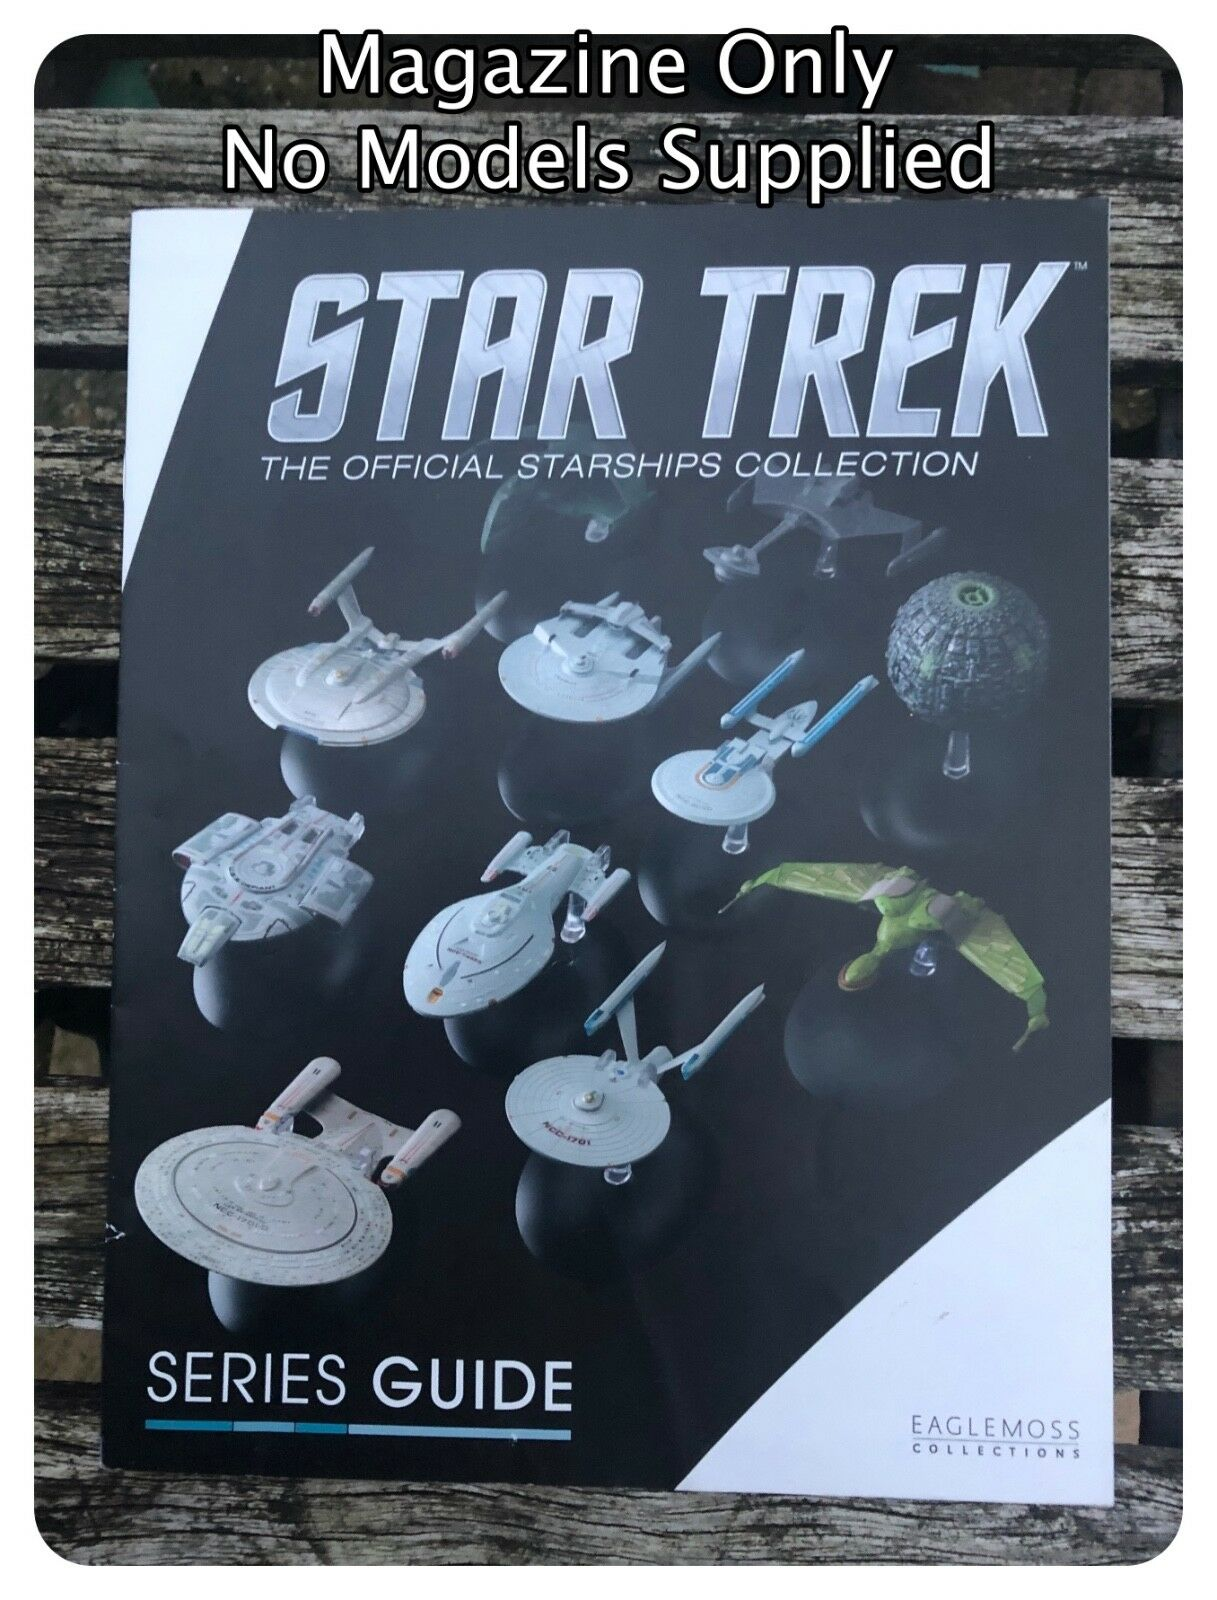 Series Guide (No Model Supplied)